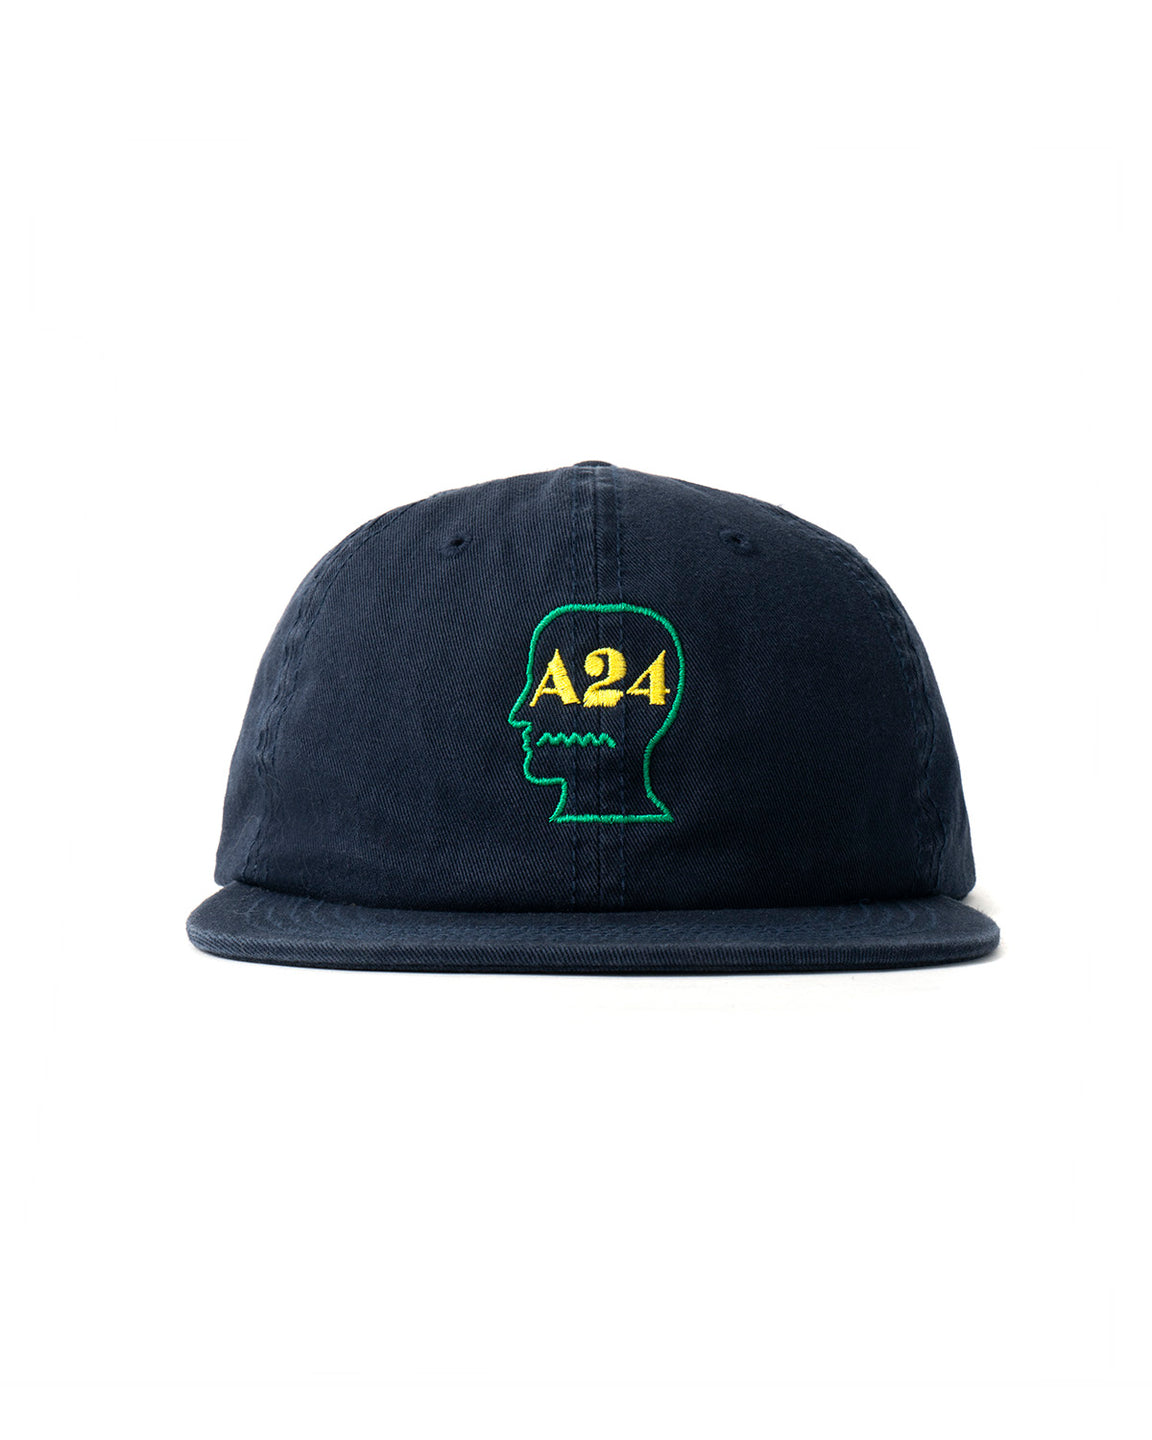 A24 x Brain Dead Logo Head Embroidered 6 Panel Strapback Hat - Navy